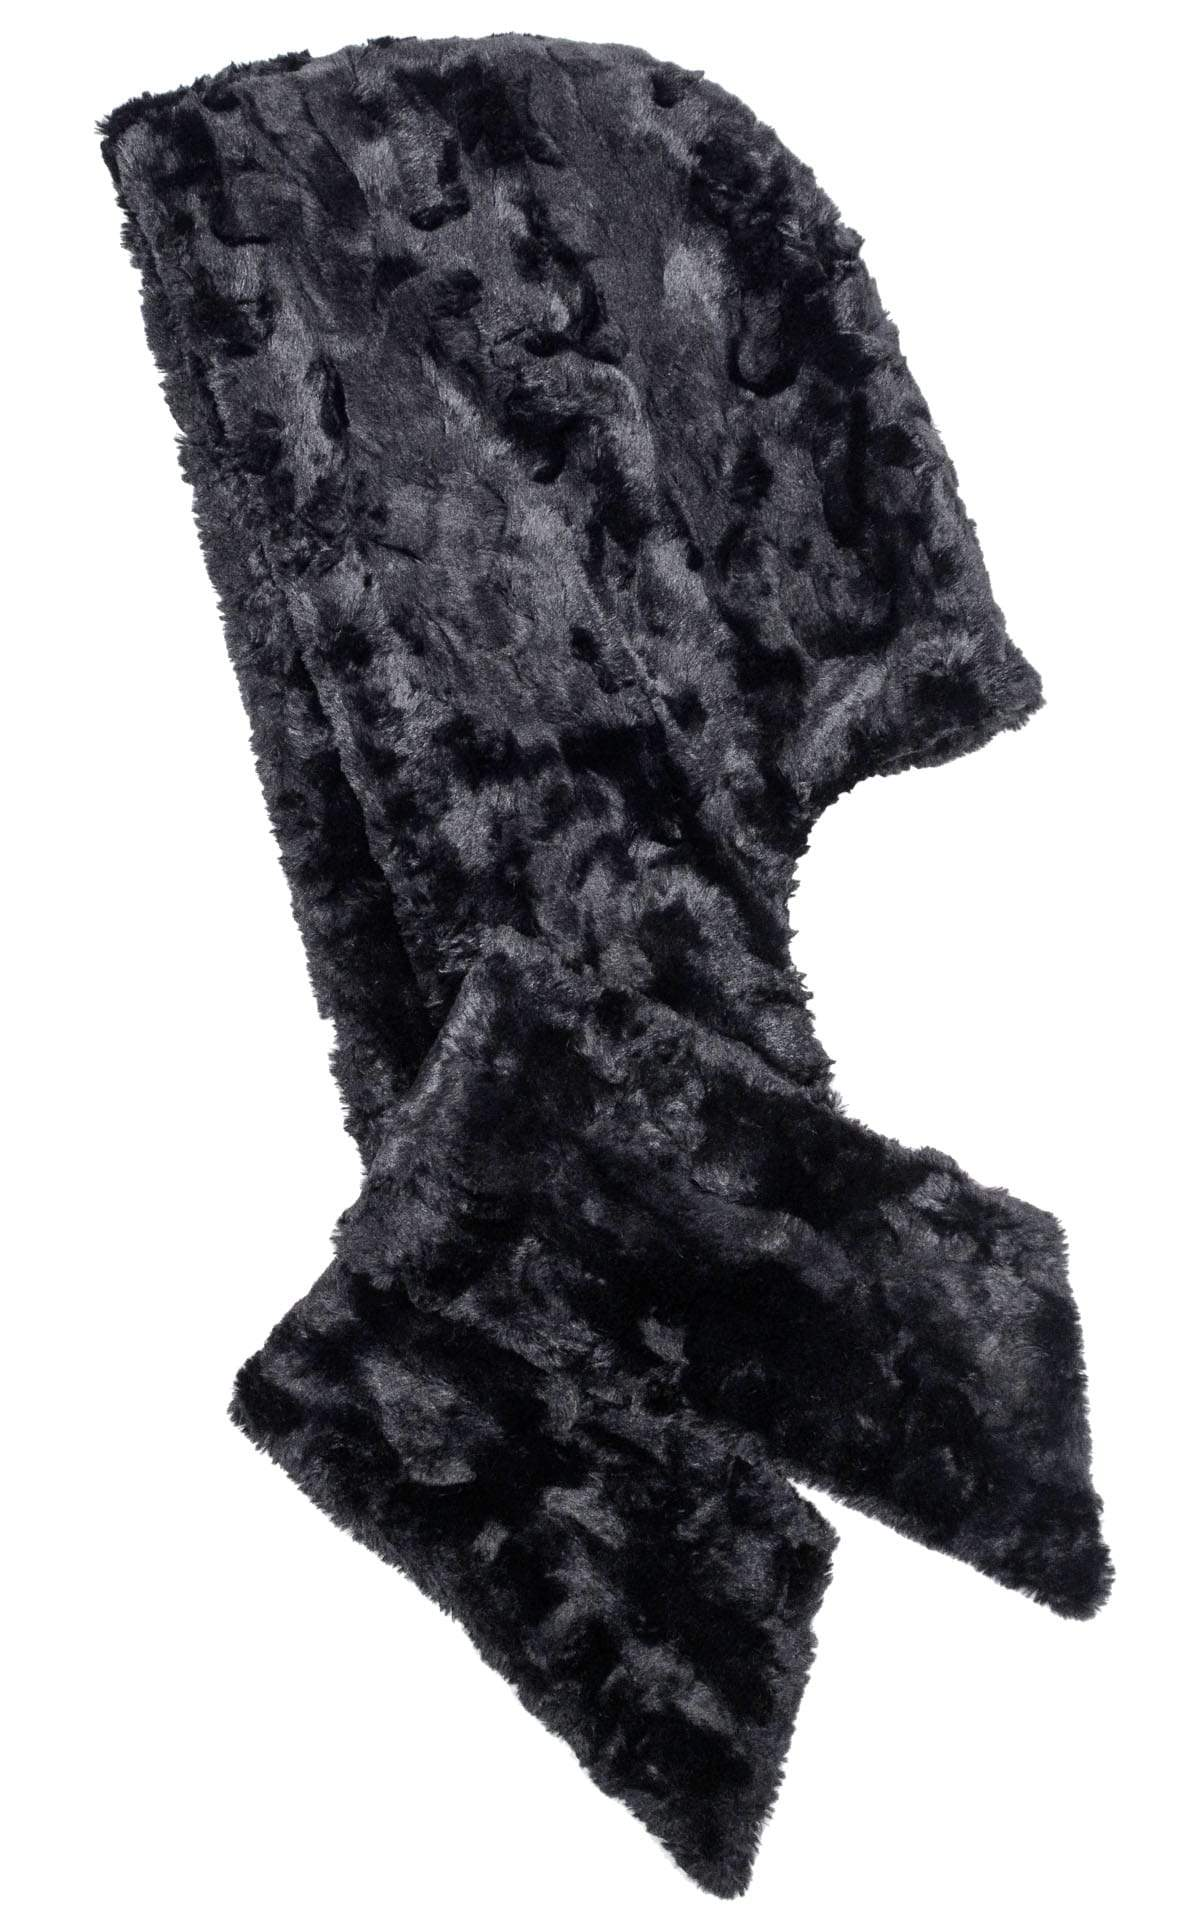 Hoody Scarf - Cuddly Faux Fur in Black with Assorted Faux Fur